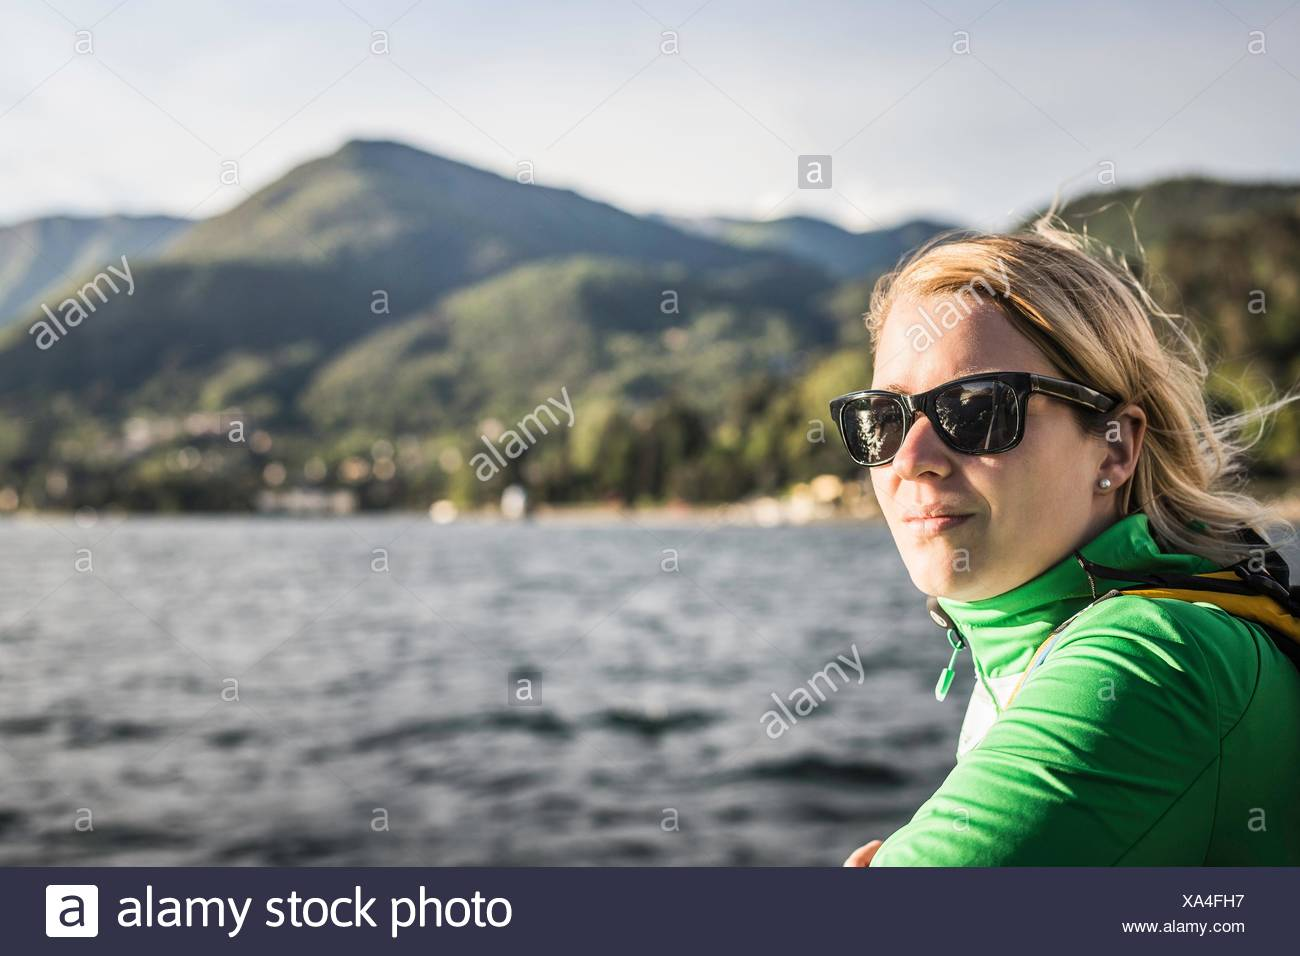 Portrait of young woman, Lake Como, Italy - Stock Image